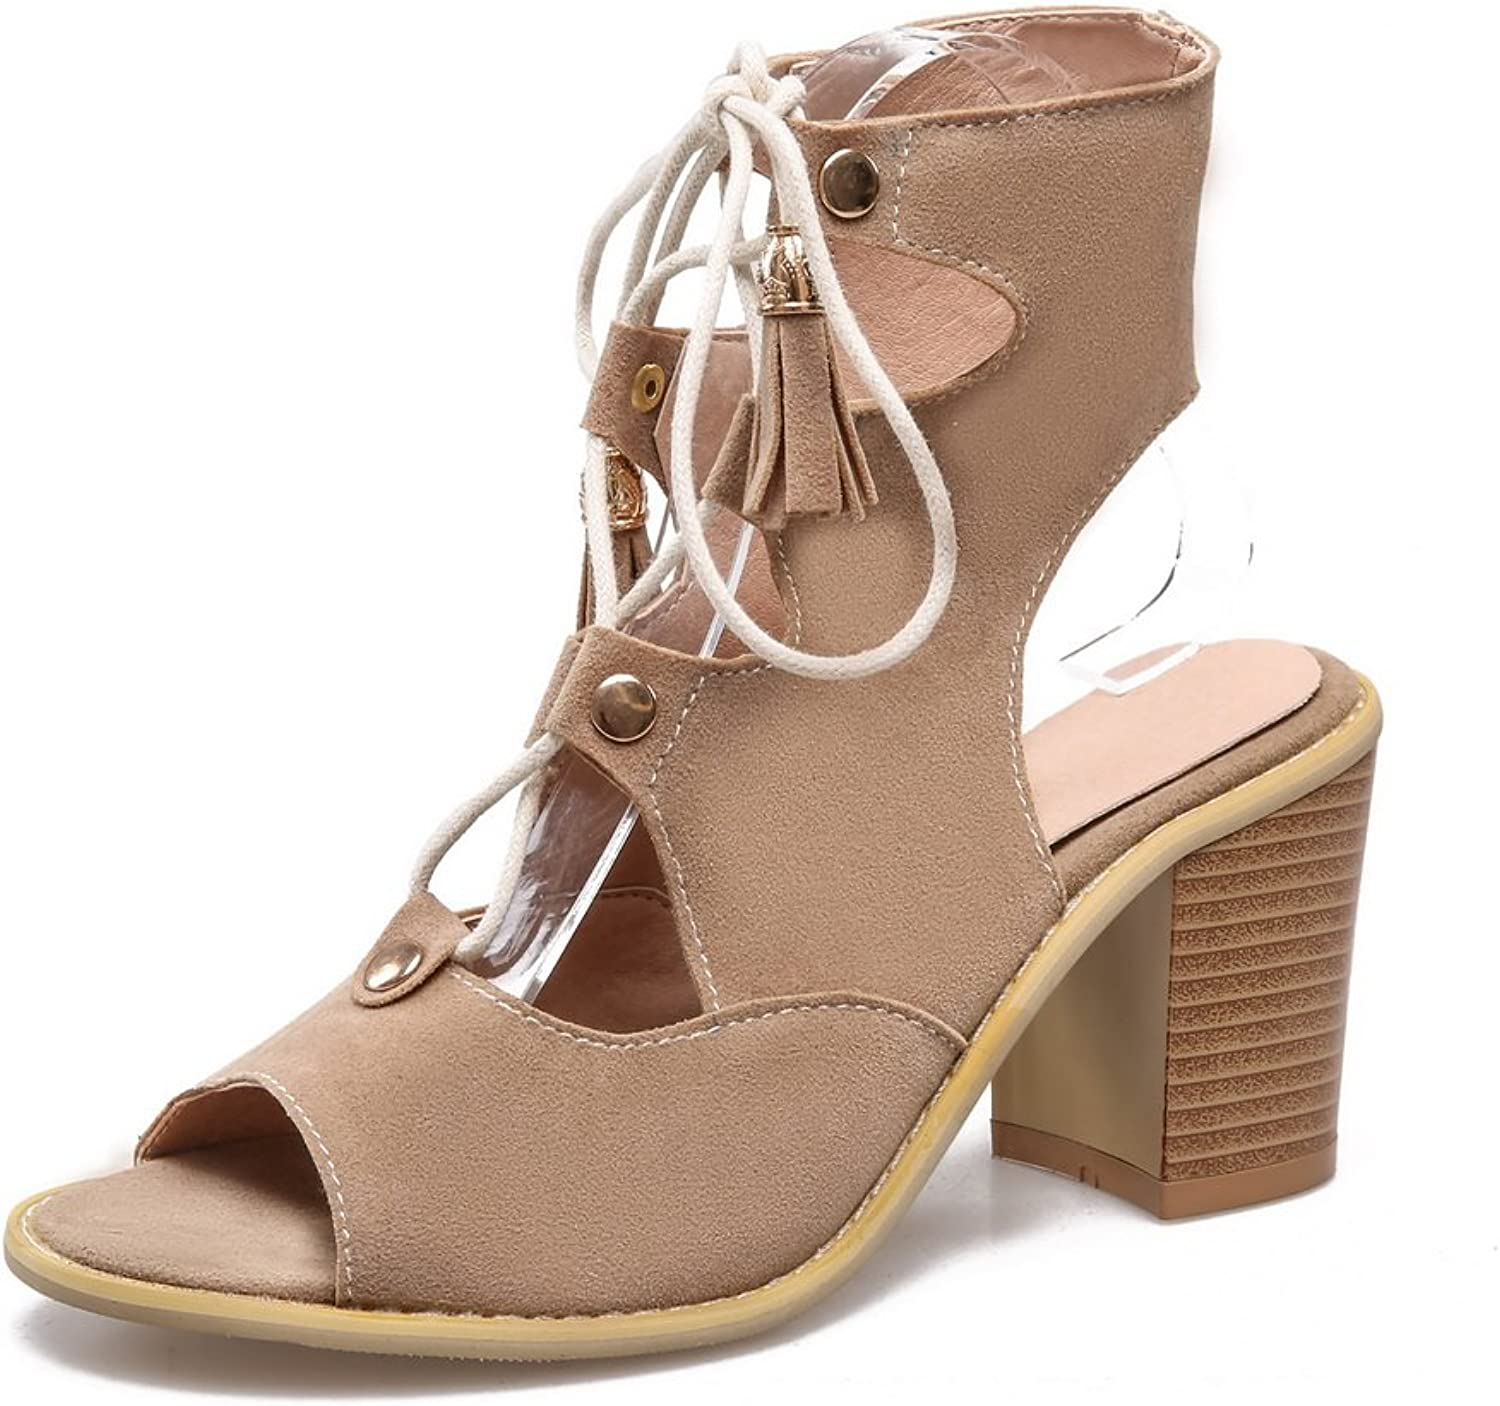 AdeeSu Womens Cross-Body-Strap High-Heels Frosted Sandals